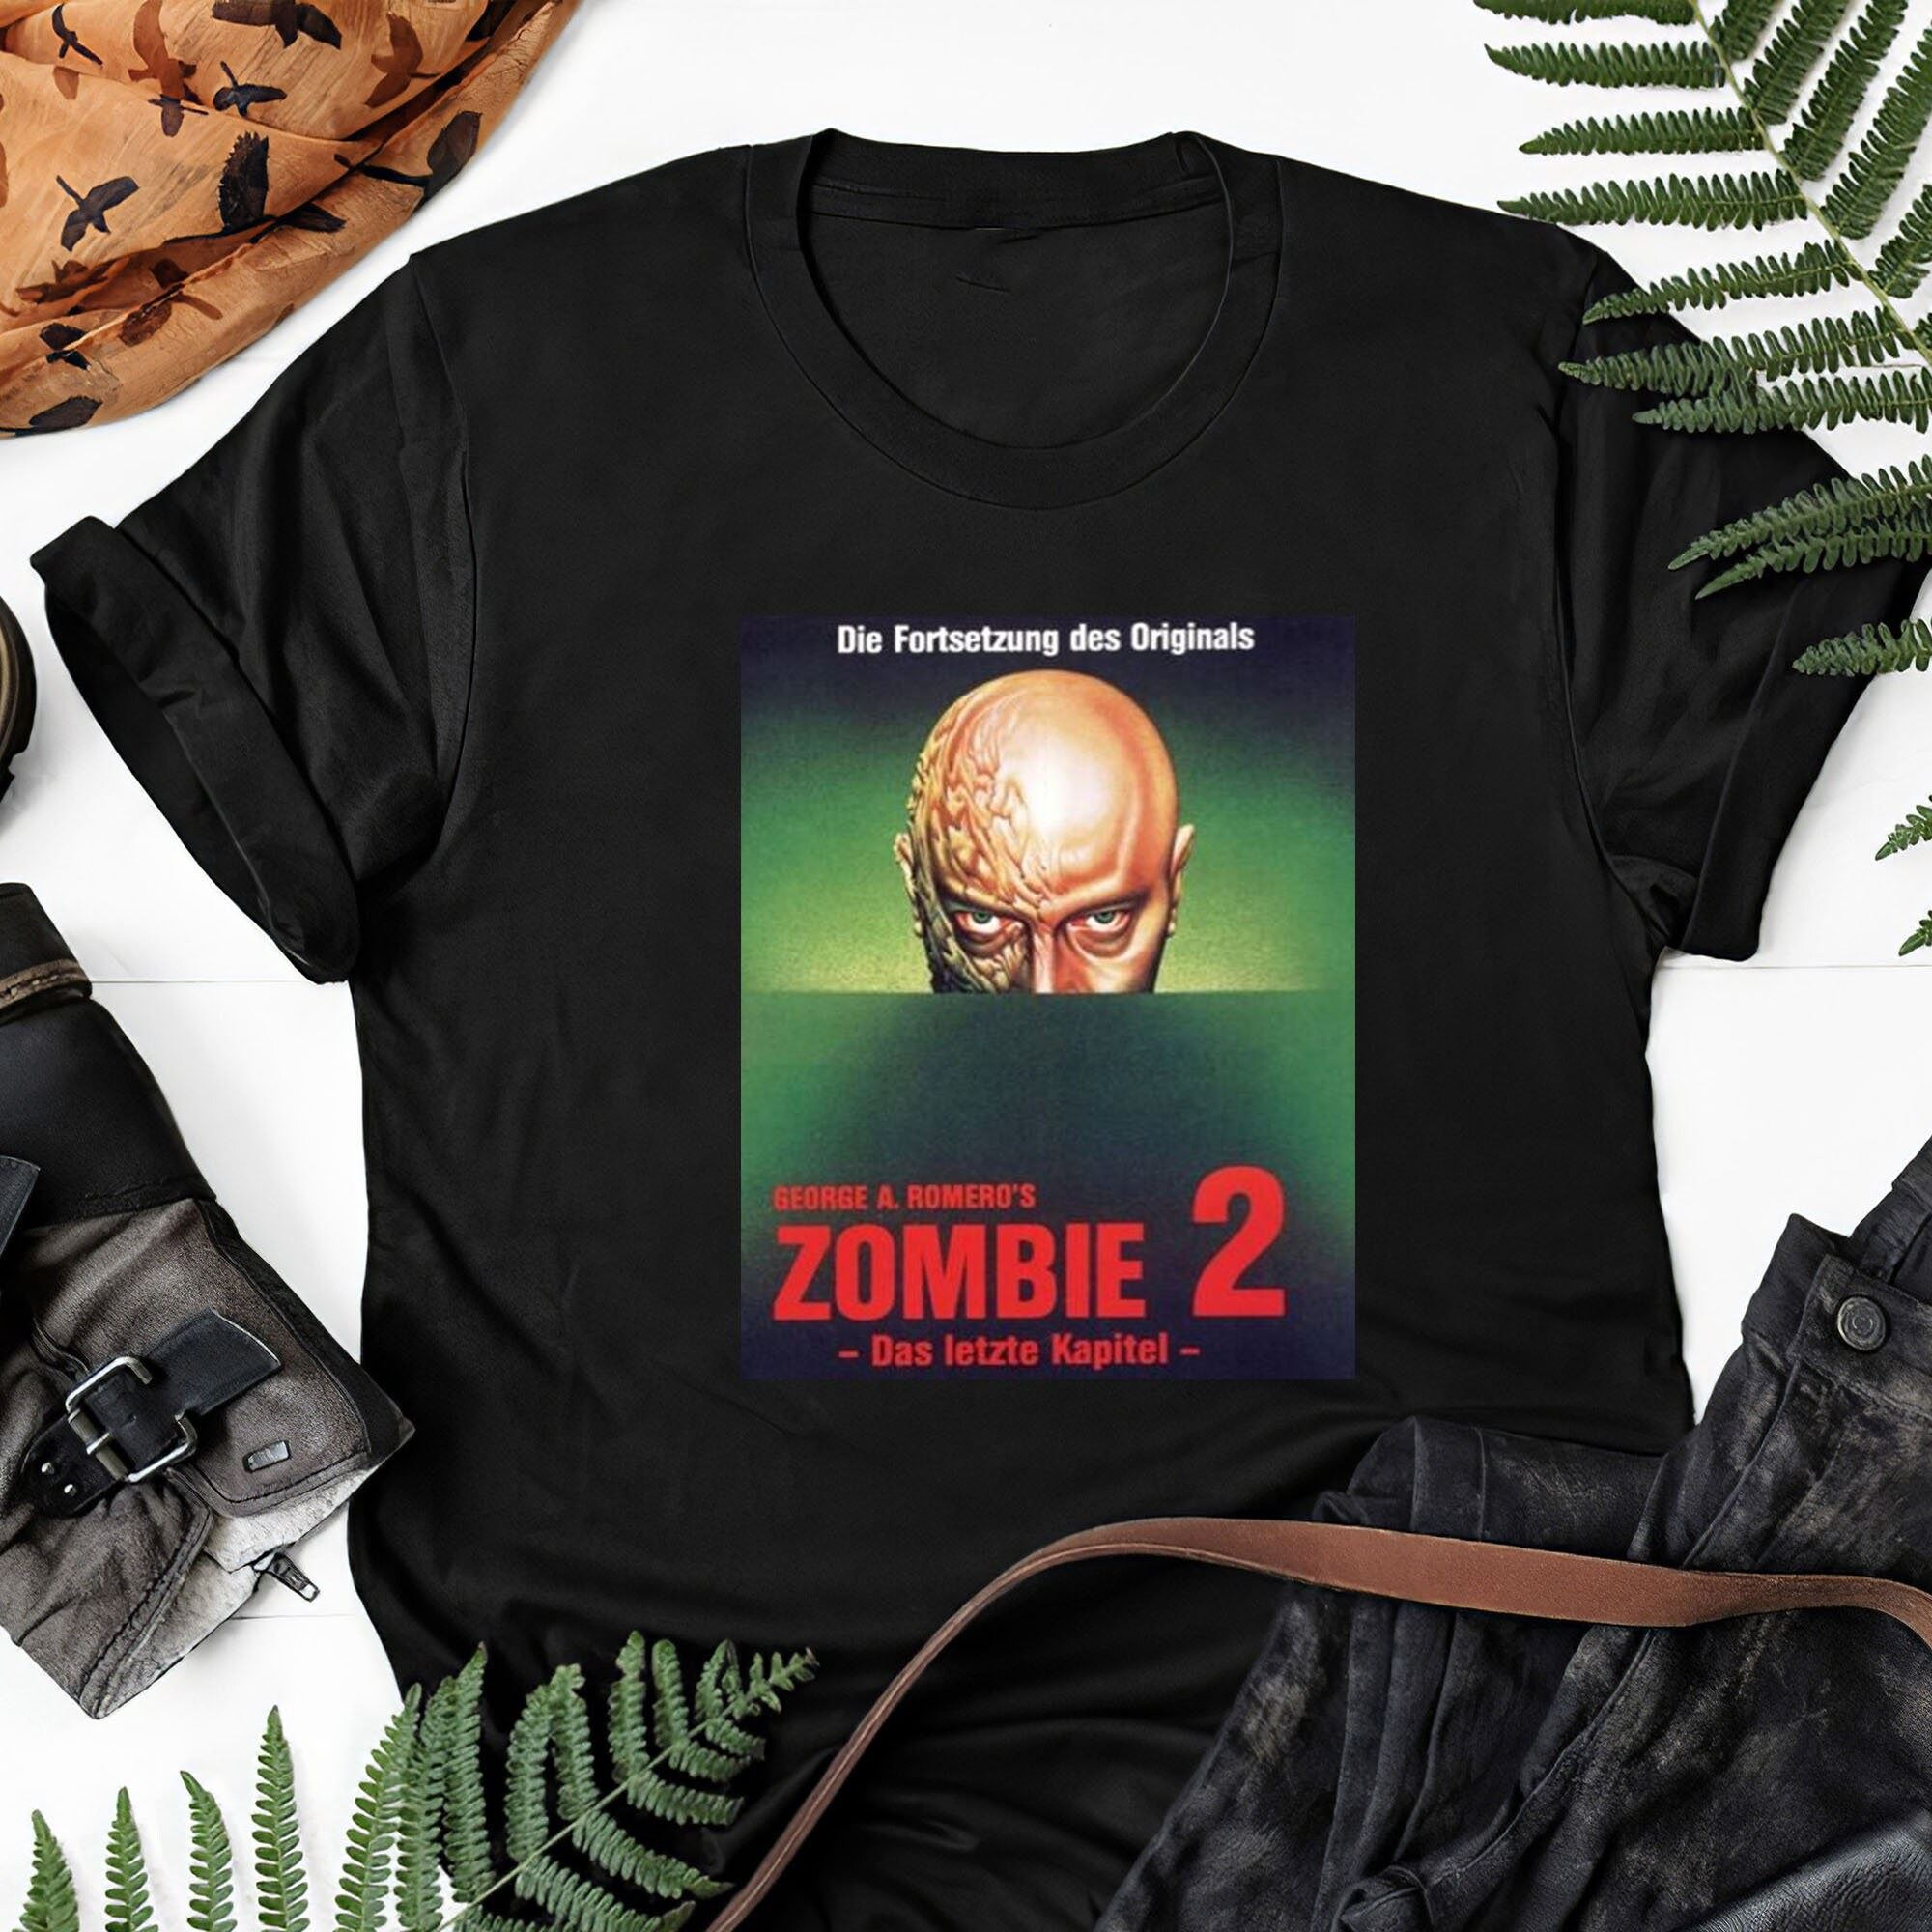 Day Of The Dead Movie Poster Horror Zombie 2 George Romero Gift Tee For Men Women Unisex T-shirt